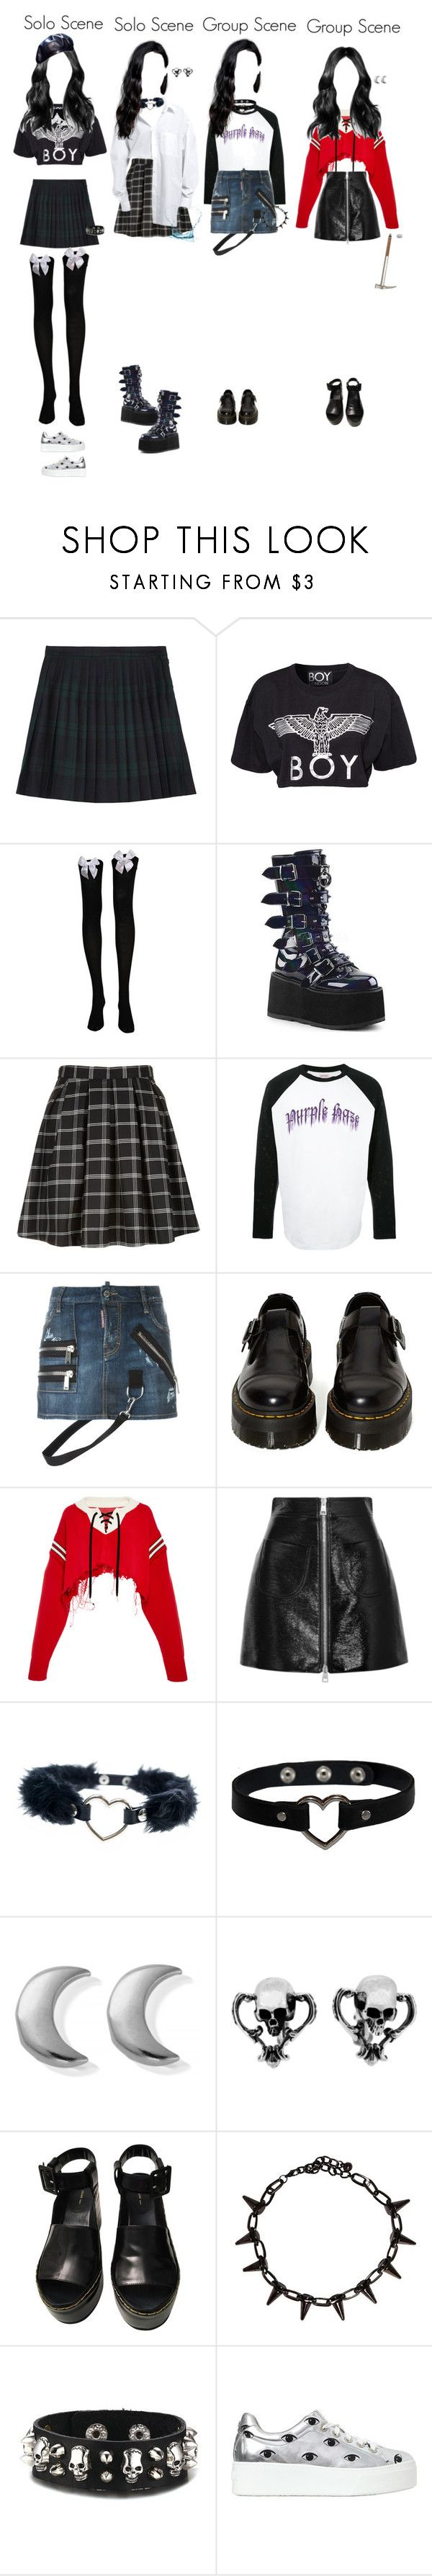 """(Pixels M/V) Nari"" by element-yoso ❤ liked on Polyvore featuring McQ by Alexander McQueen, BOY London, CO, Demonia, Palm Angels, Dsquared2, Dr. Martens, Monse, Sara Battaglia and ChloBo"